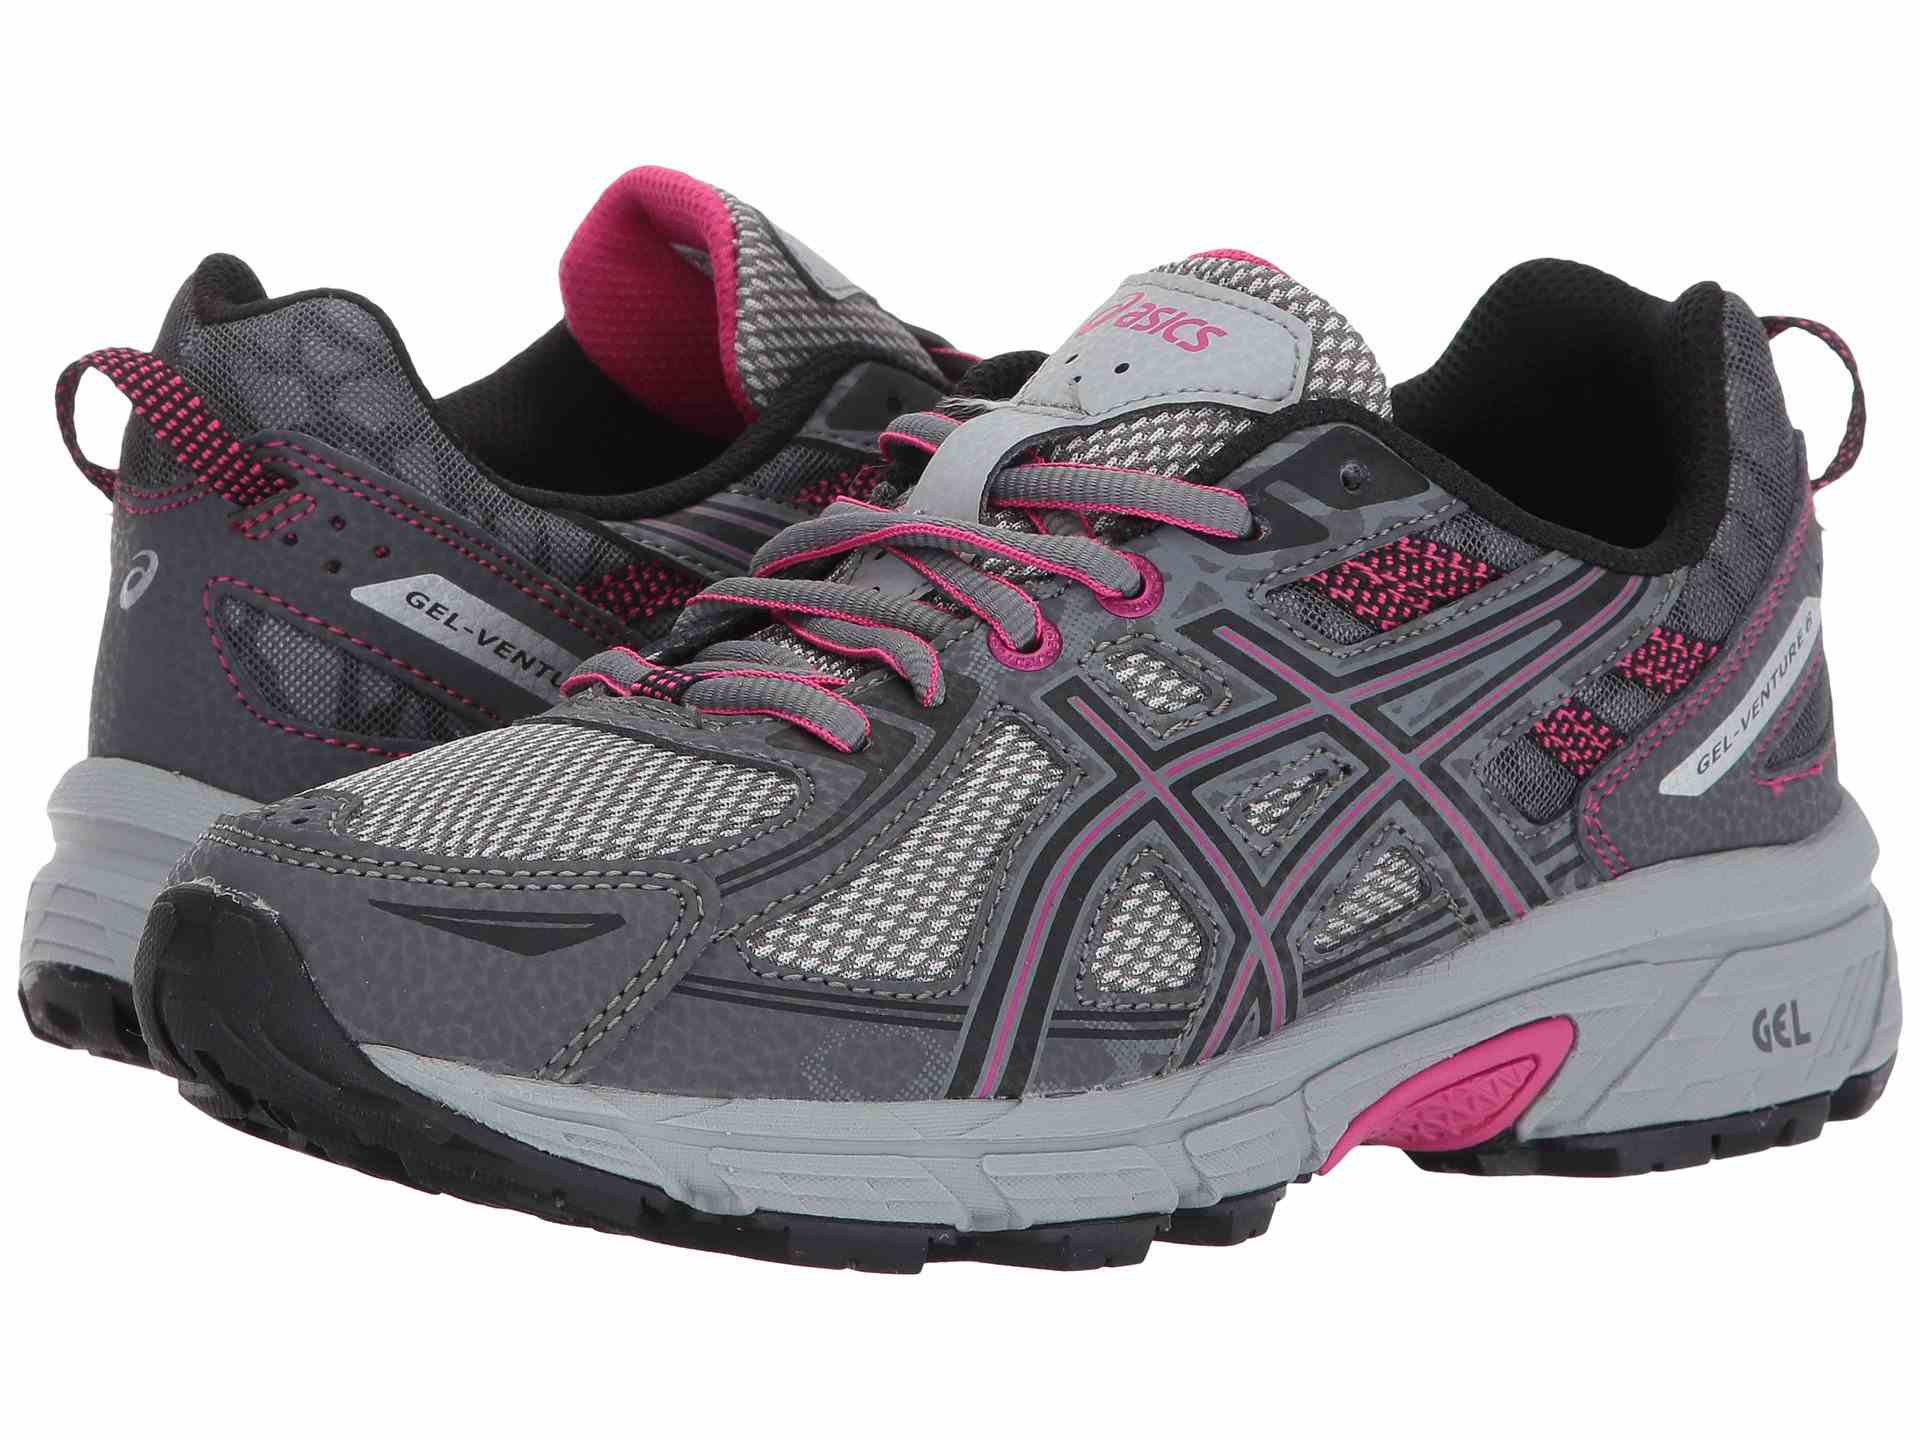 0b2862b6525c Best for Trail Marathons: ASICS Venture Running Shoe. ASICS GEL-Venture® 6